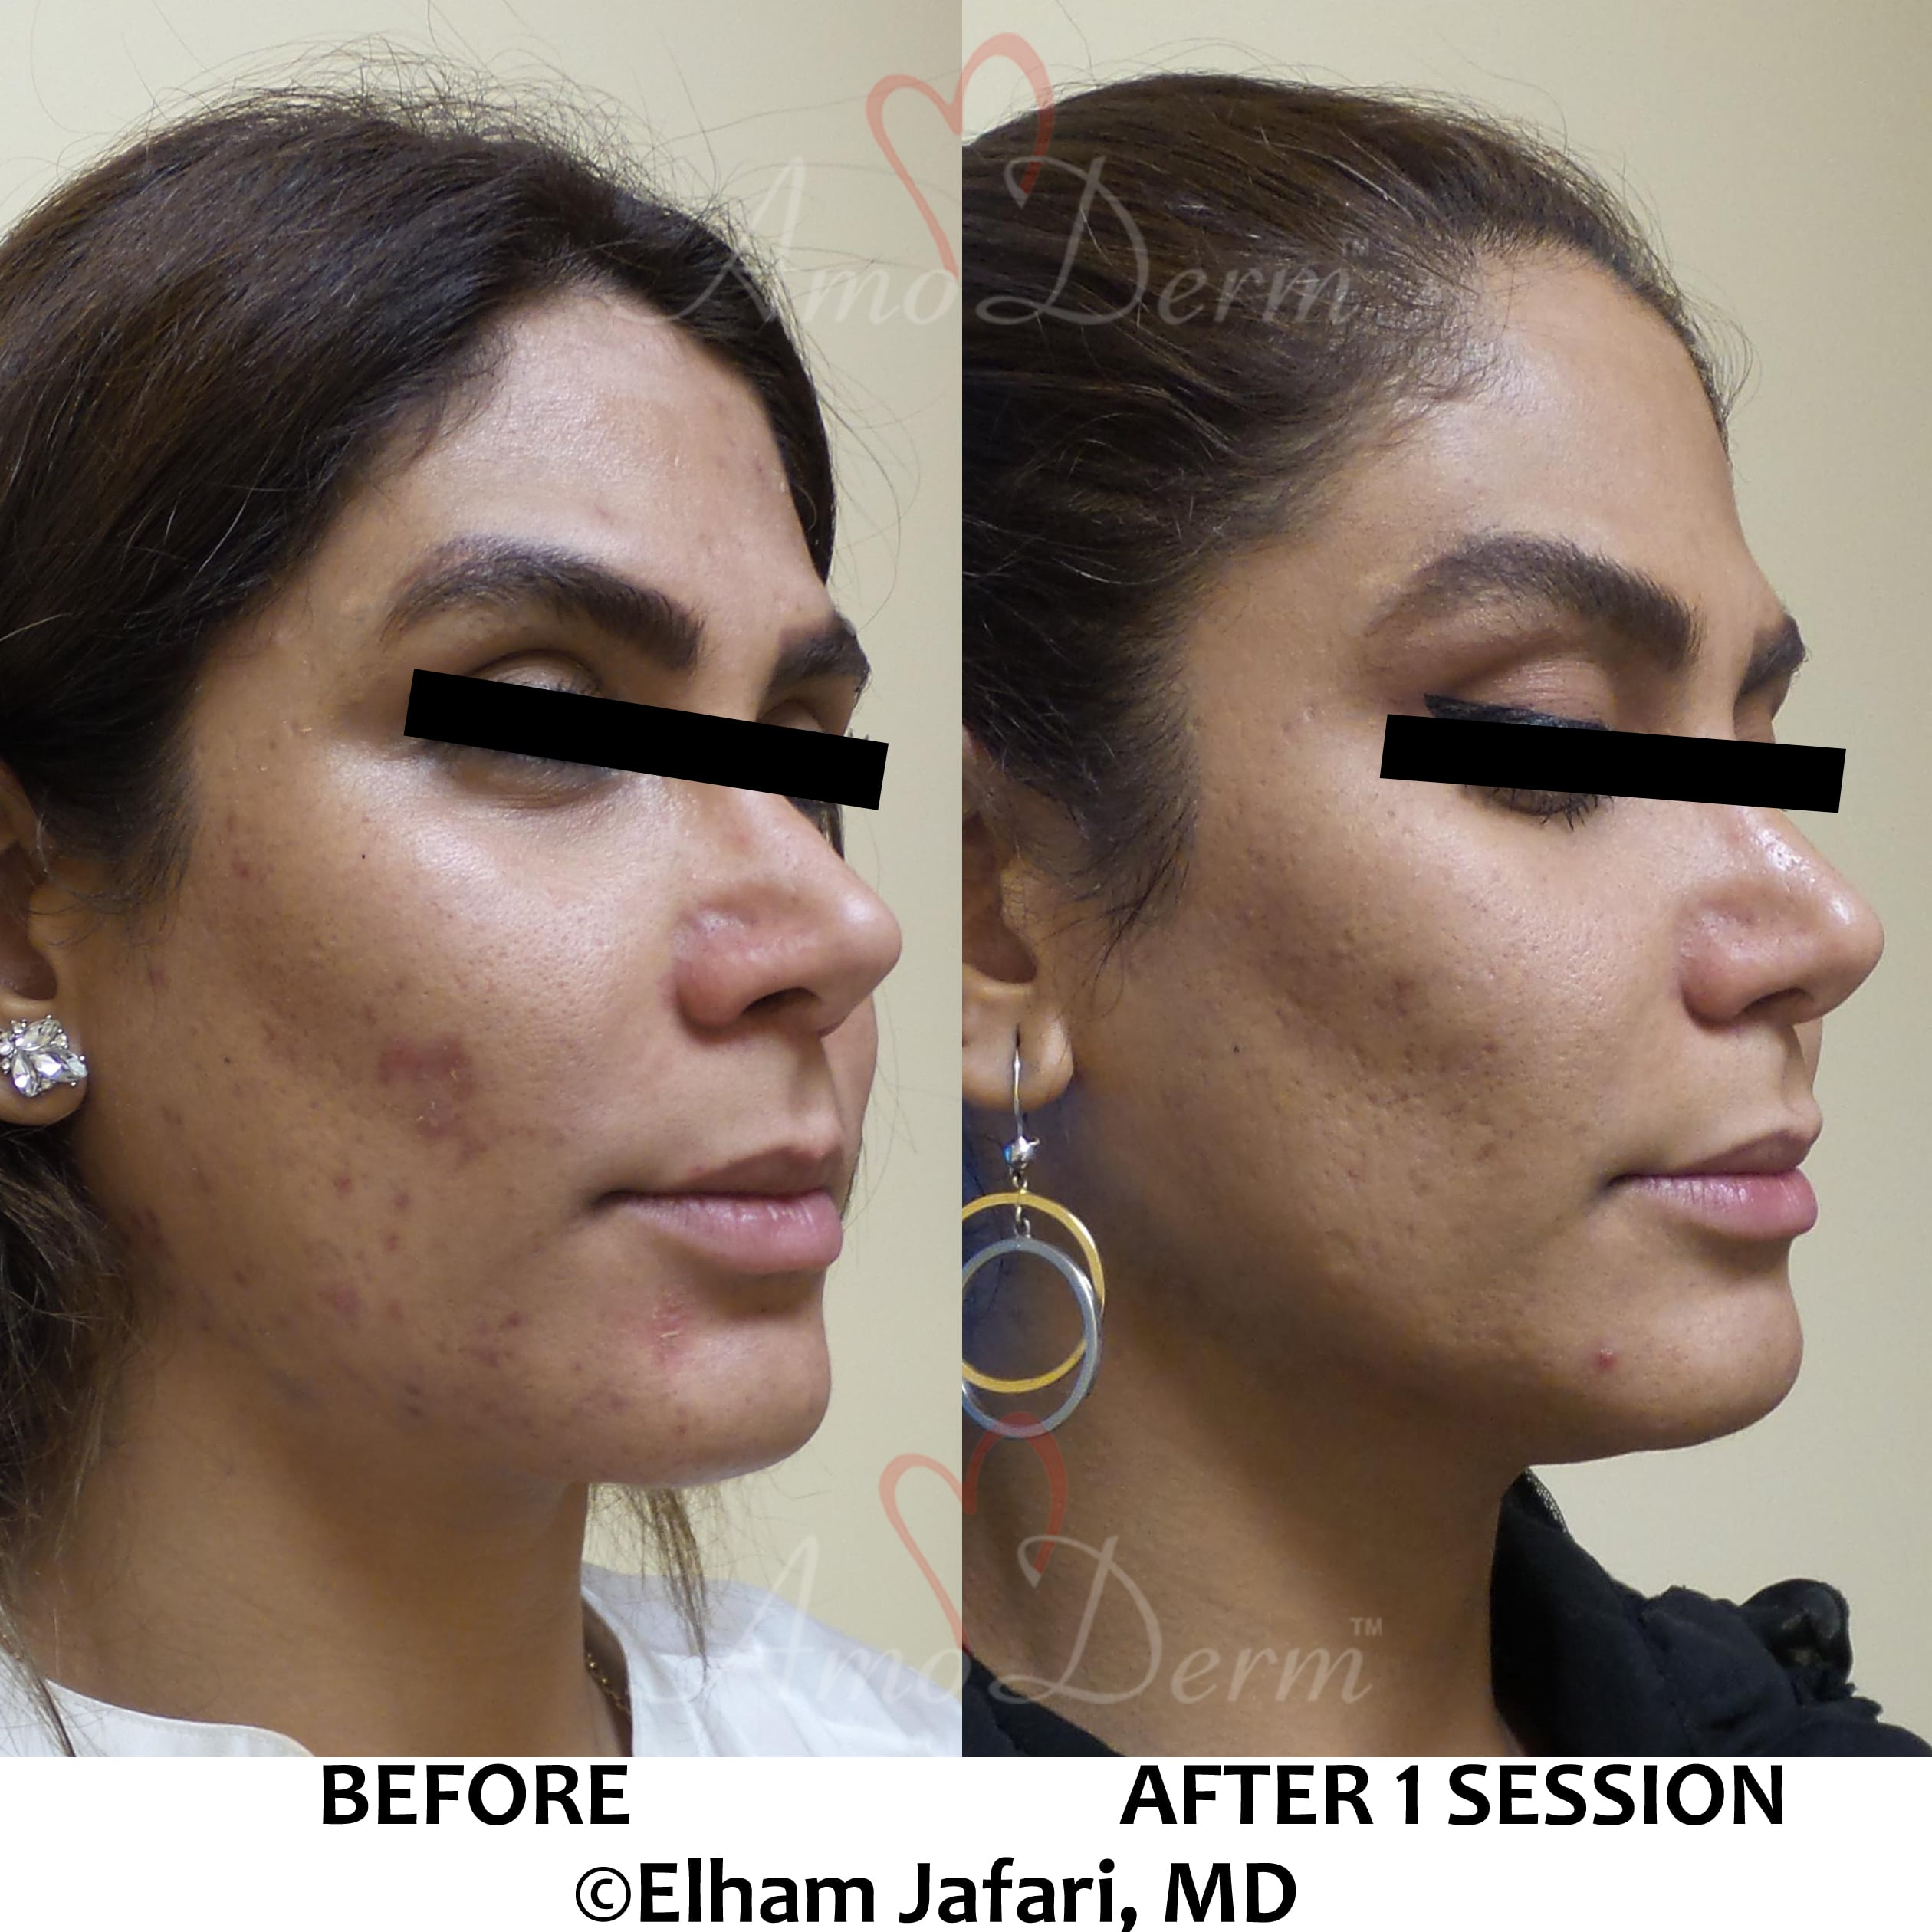 Treatment of acne scars with Fractional CO2 laser skin resurfacing